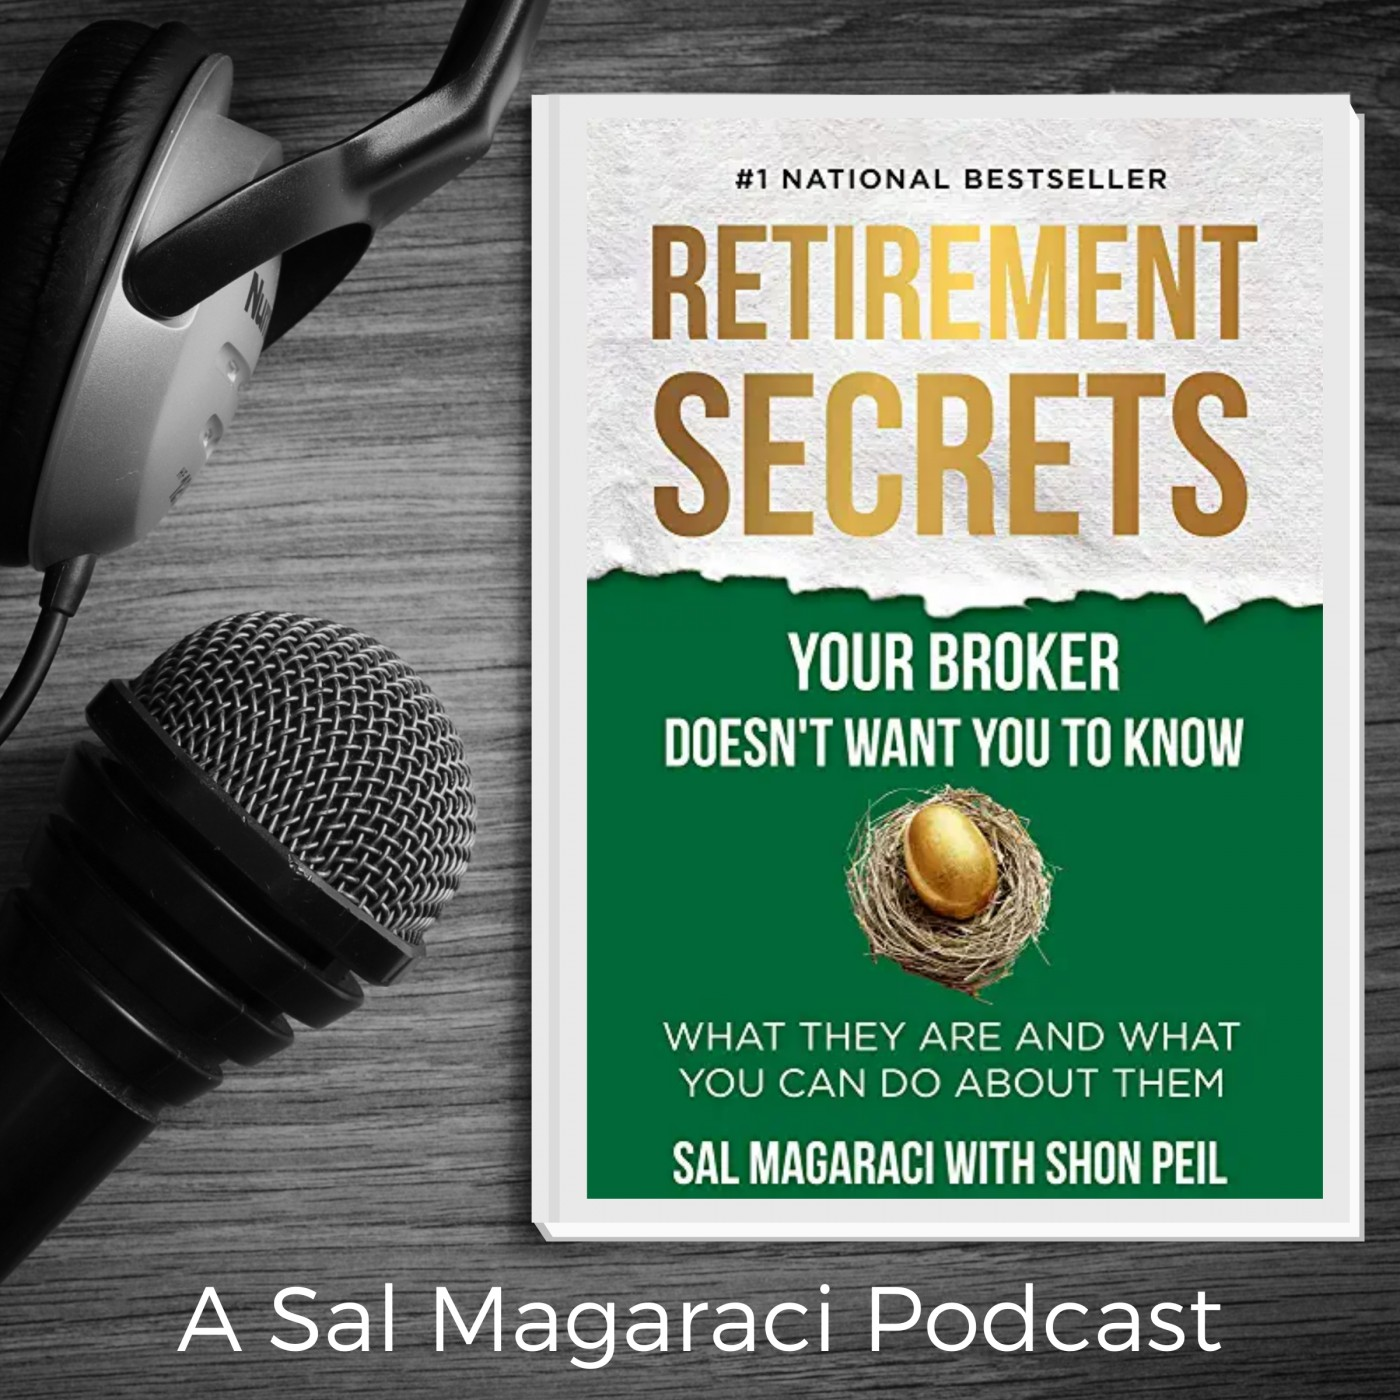 Retirement Secrets Your Broker Doesn't Want You to Know